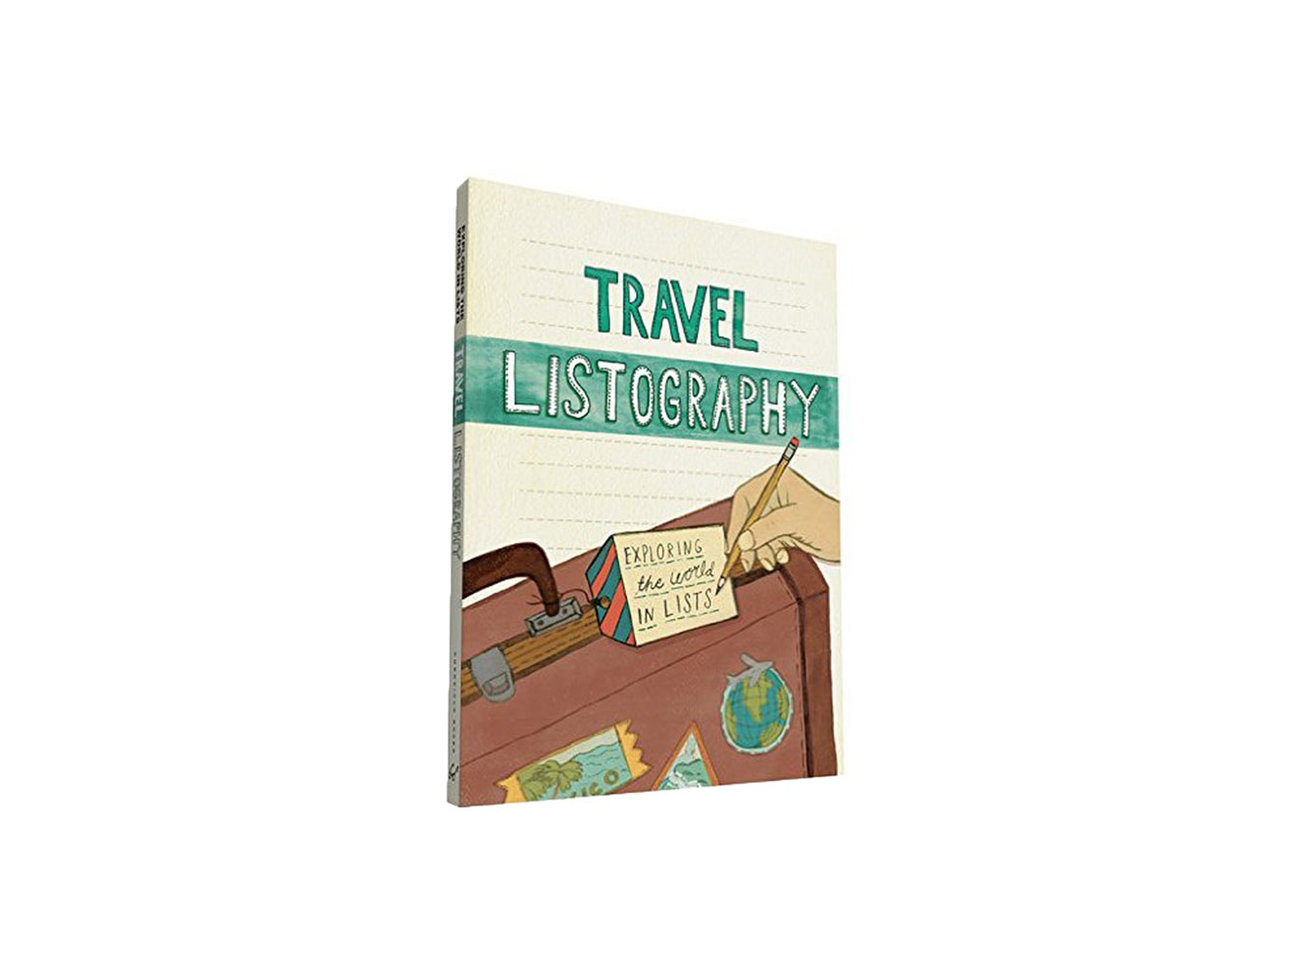 travel-listography-book-amazon-prime-BESTSHOP1215.jpg